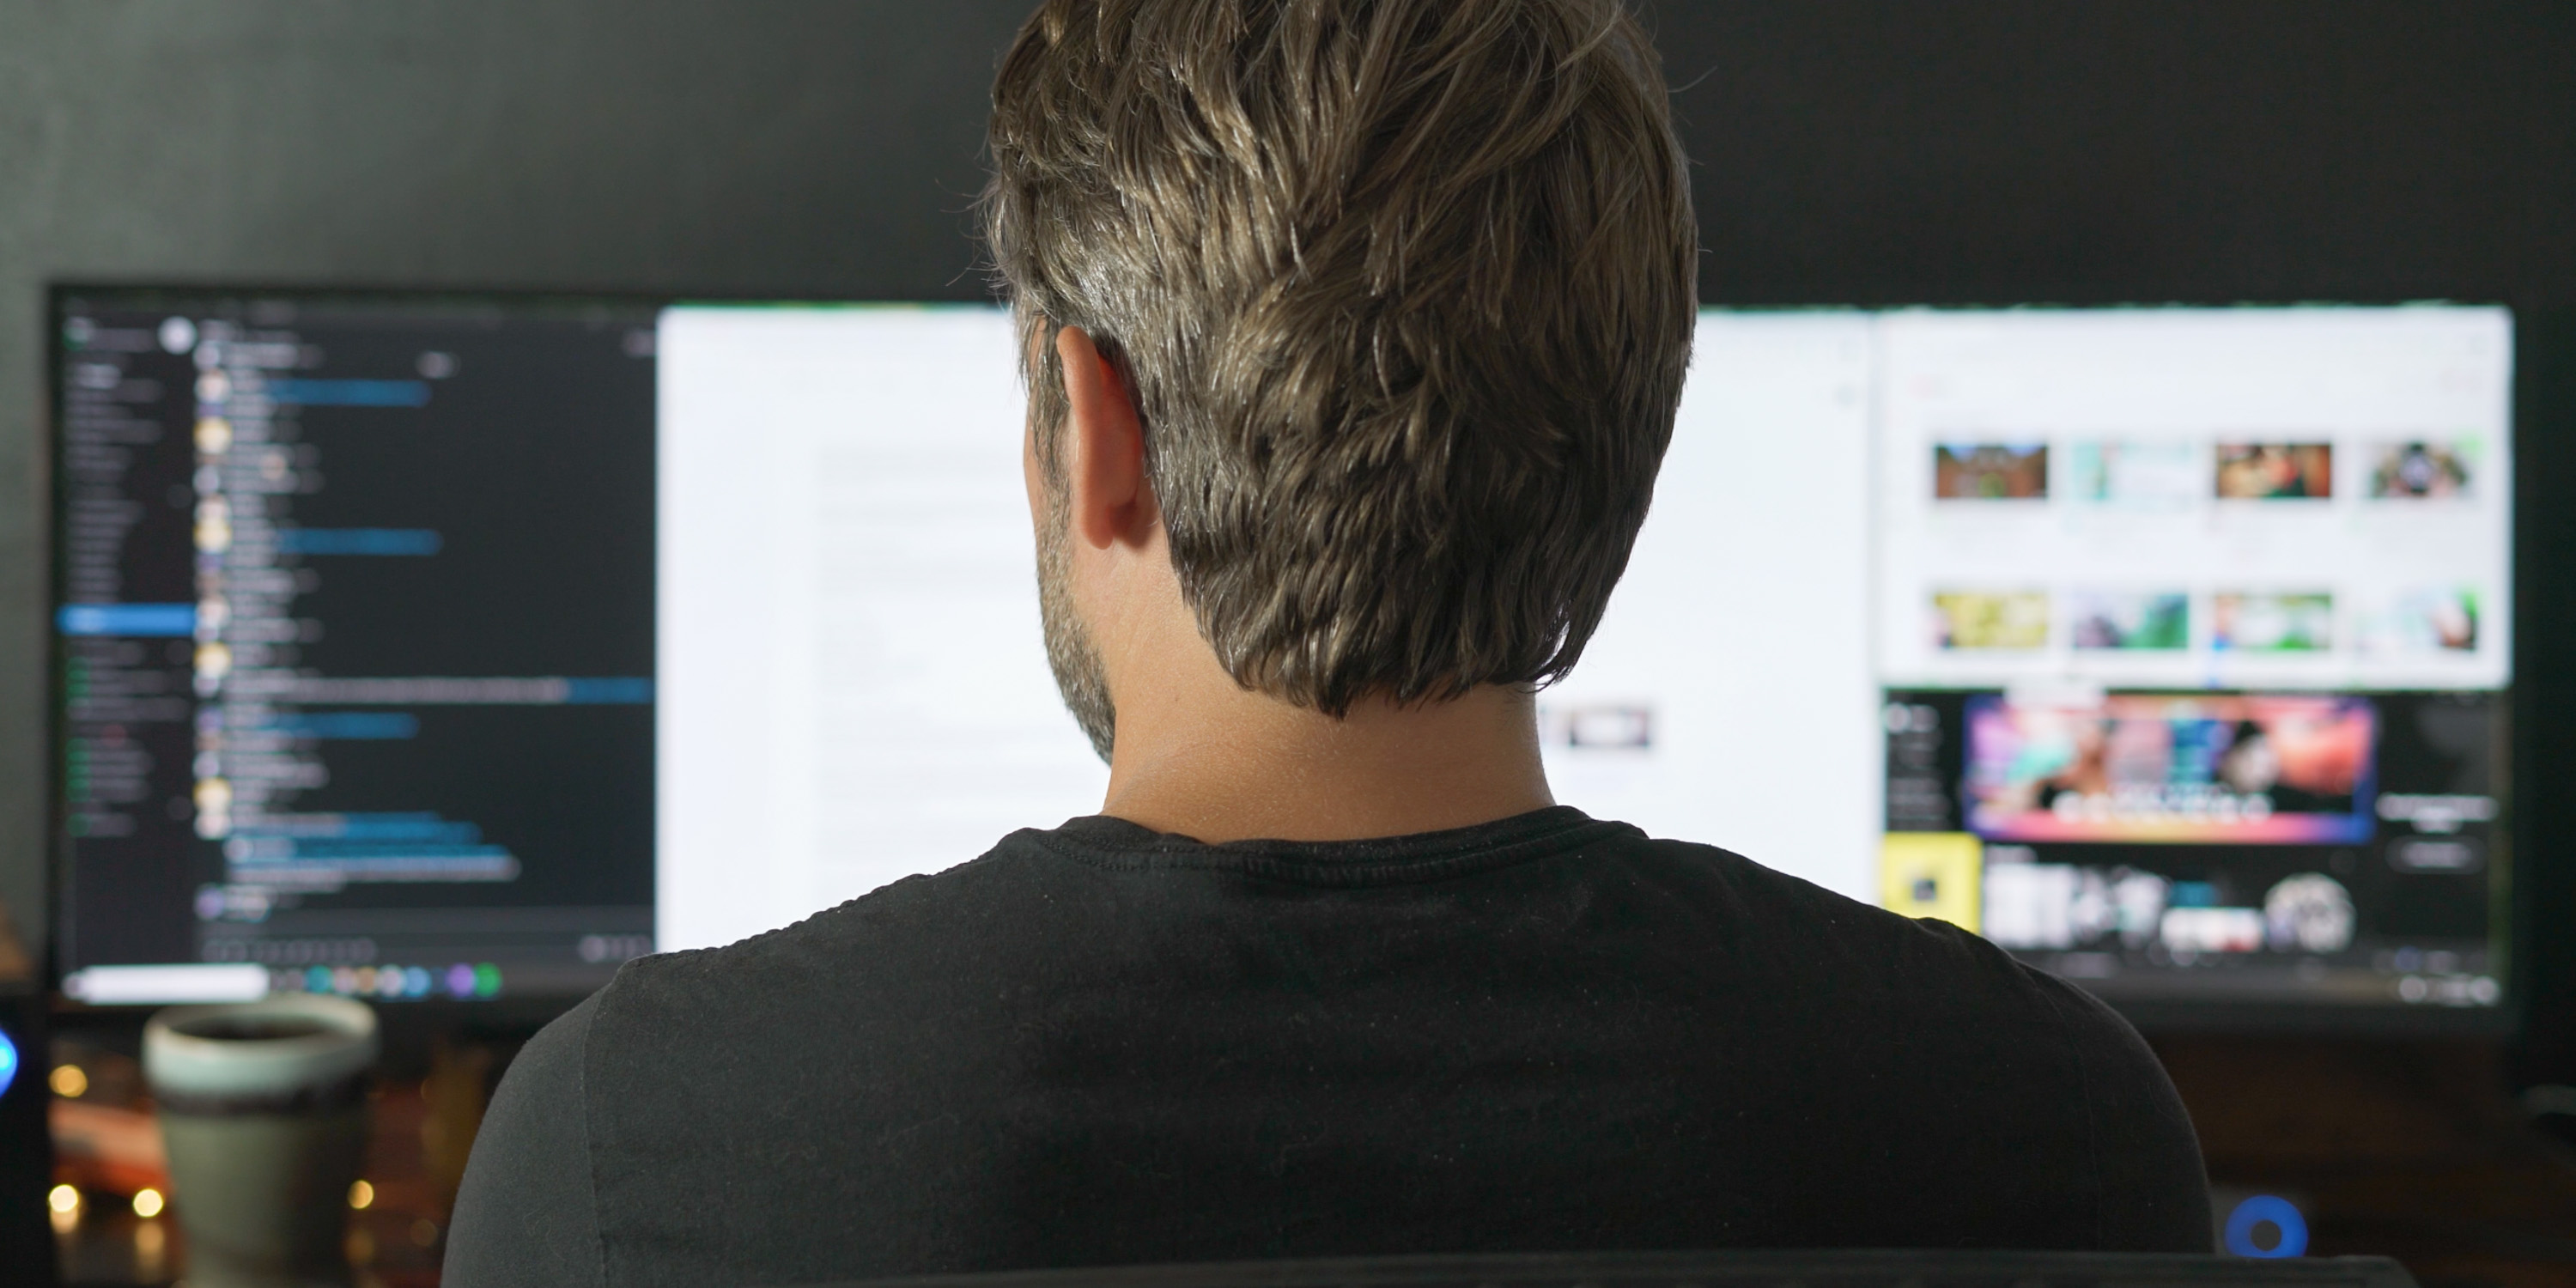 Using the Dark Mattery 49-inch monitor for productivity